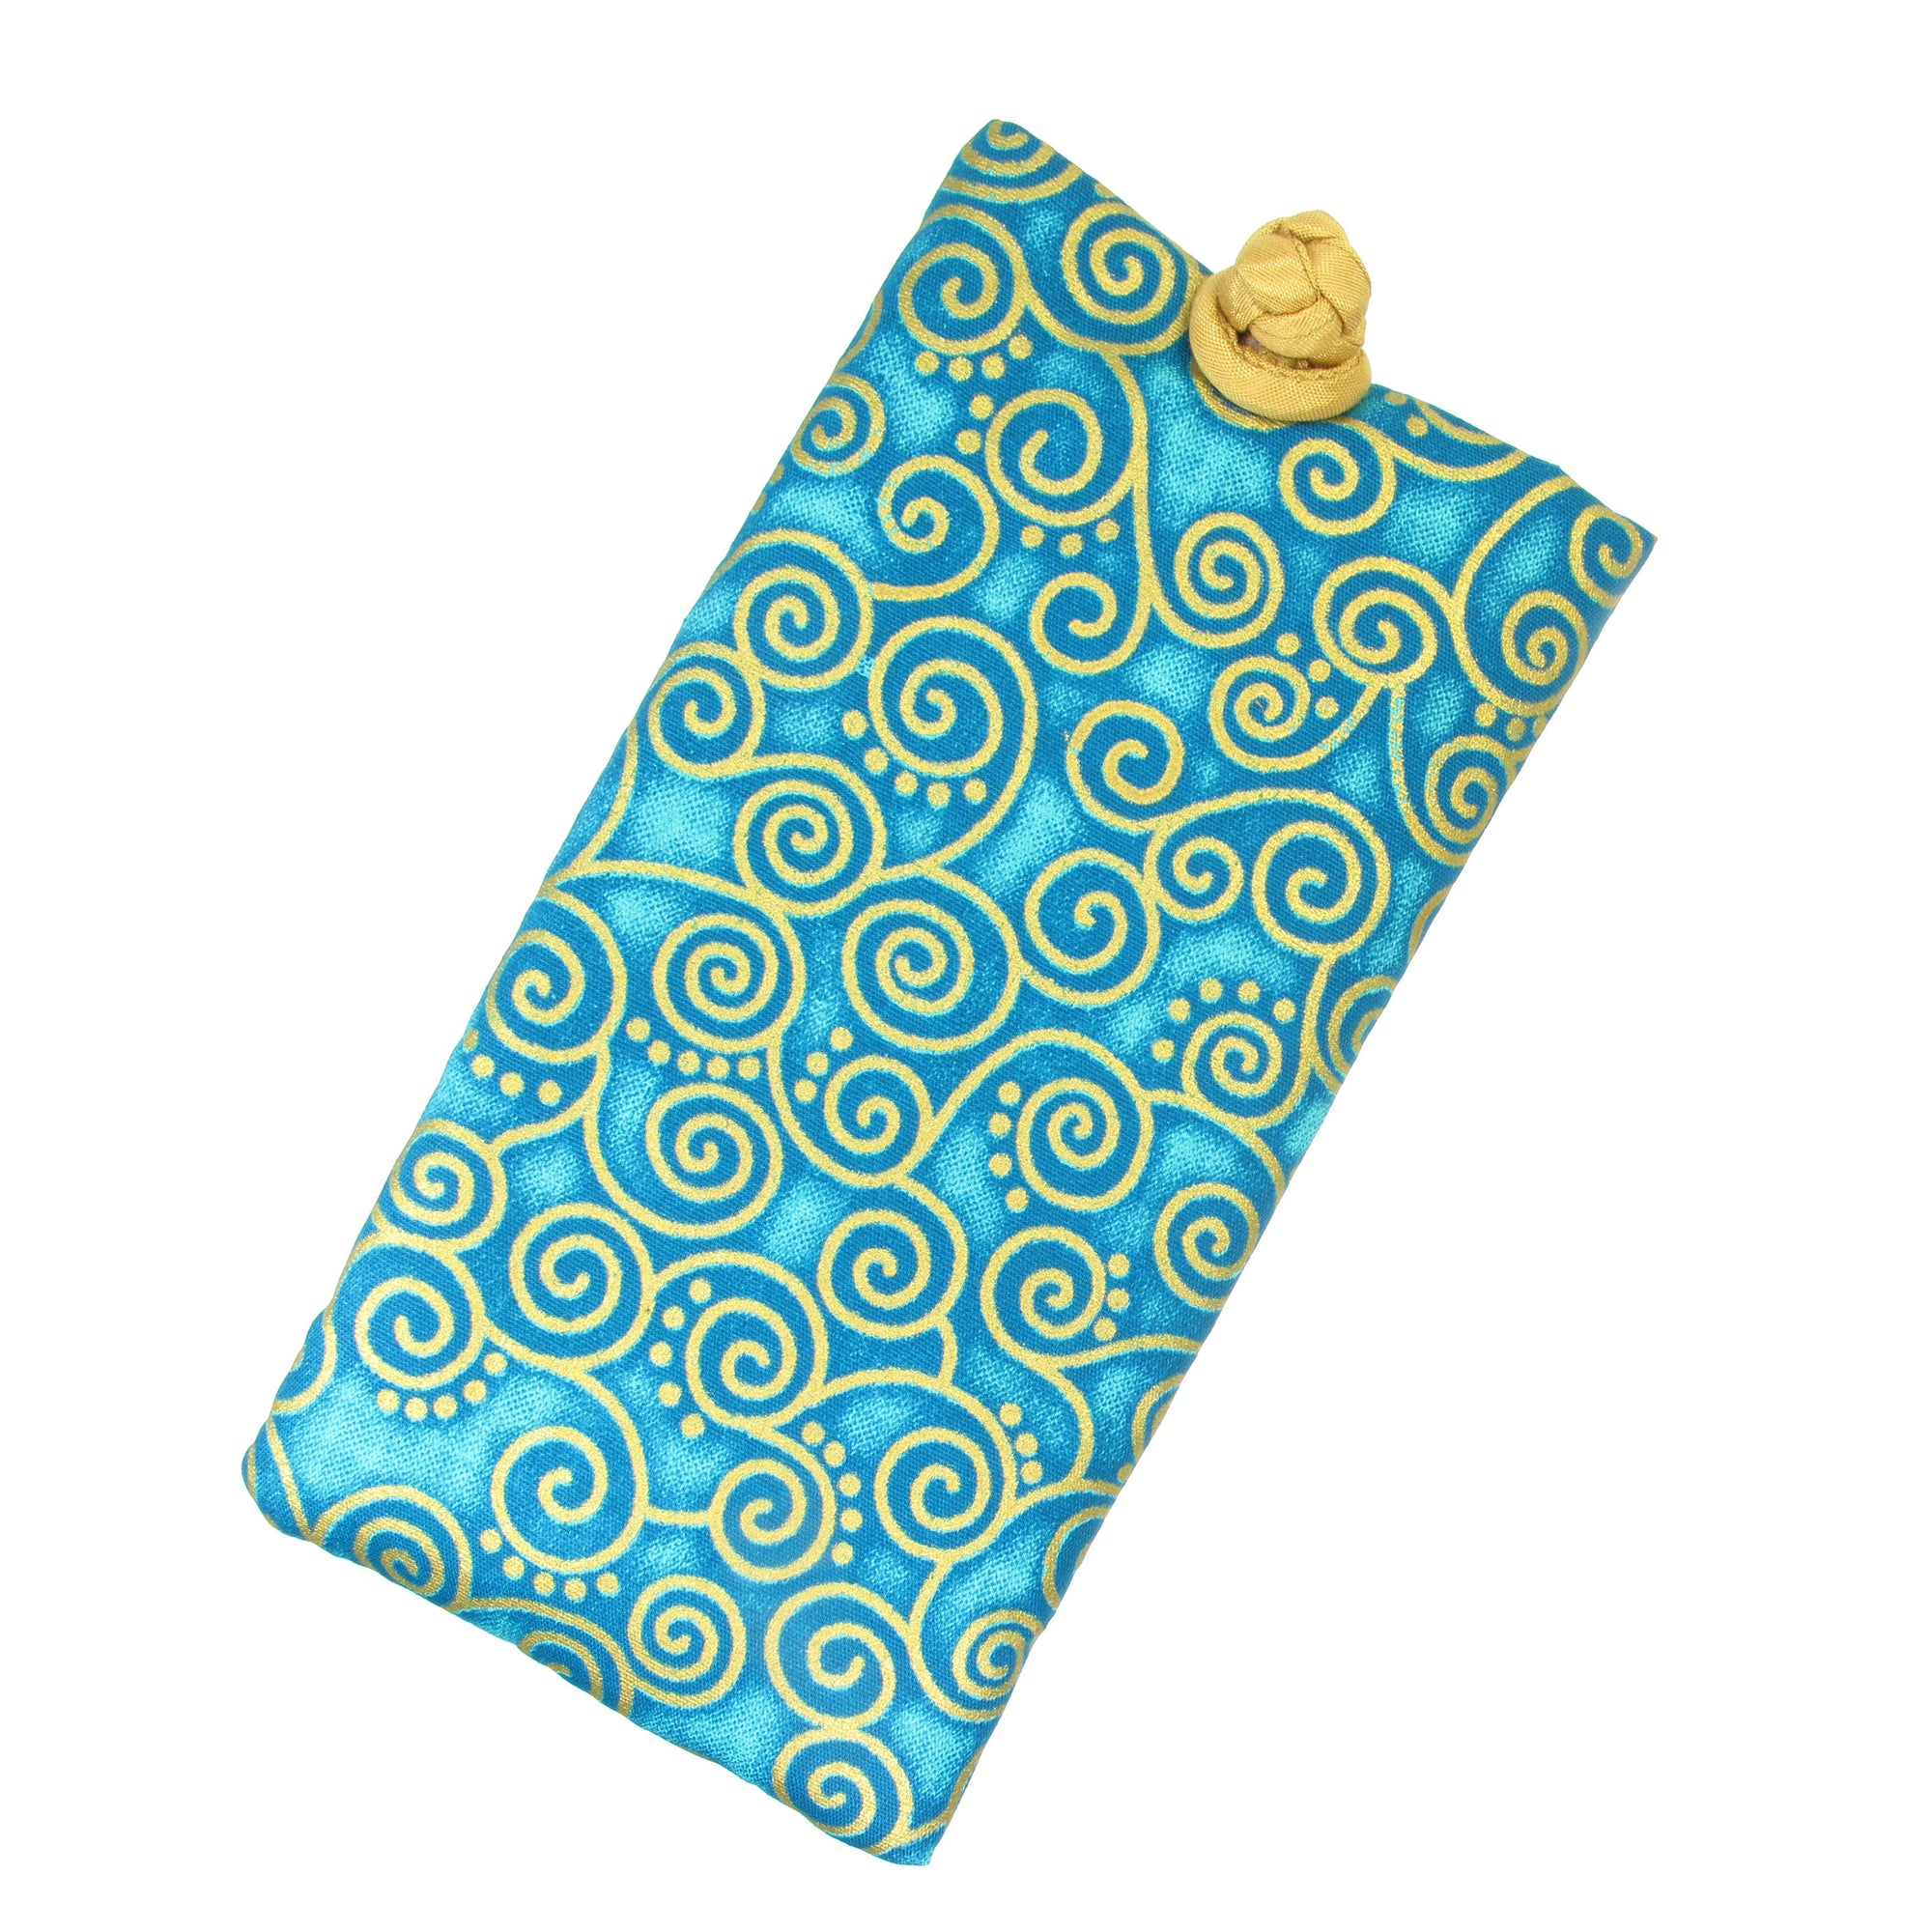 Soft Eyeglass Case (Sunglasses Pouch), Knot and Loop Closure, Cotton and Silk, Aquamarine